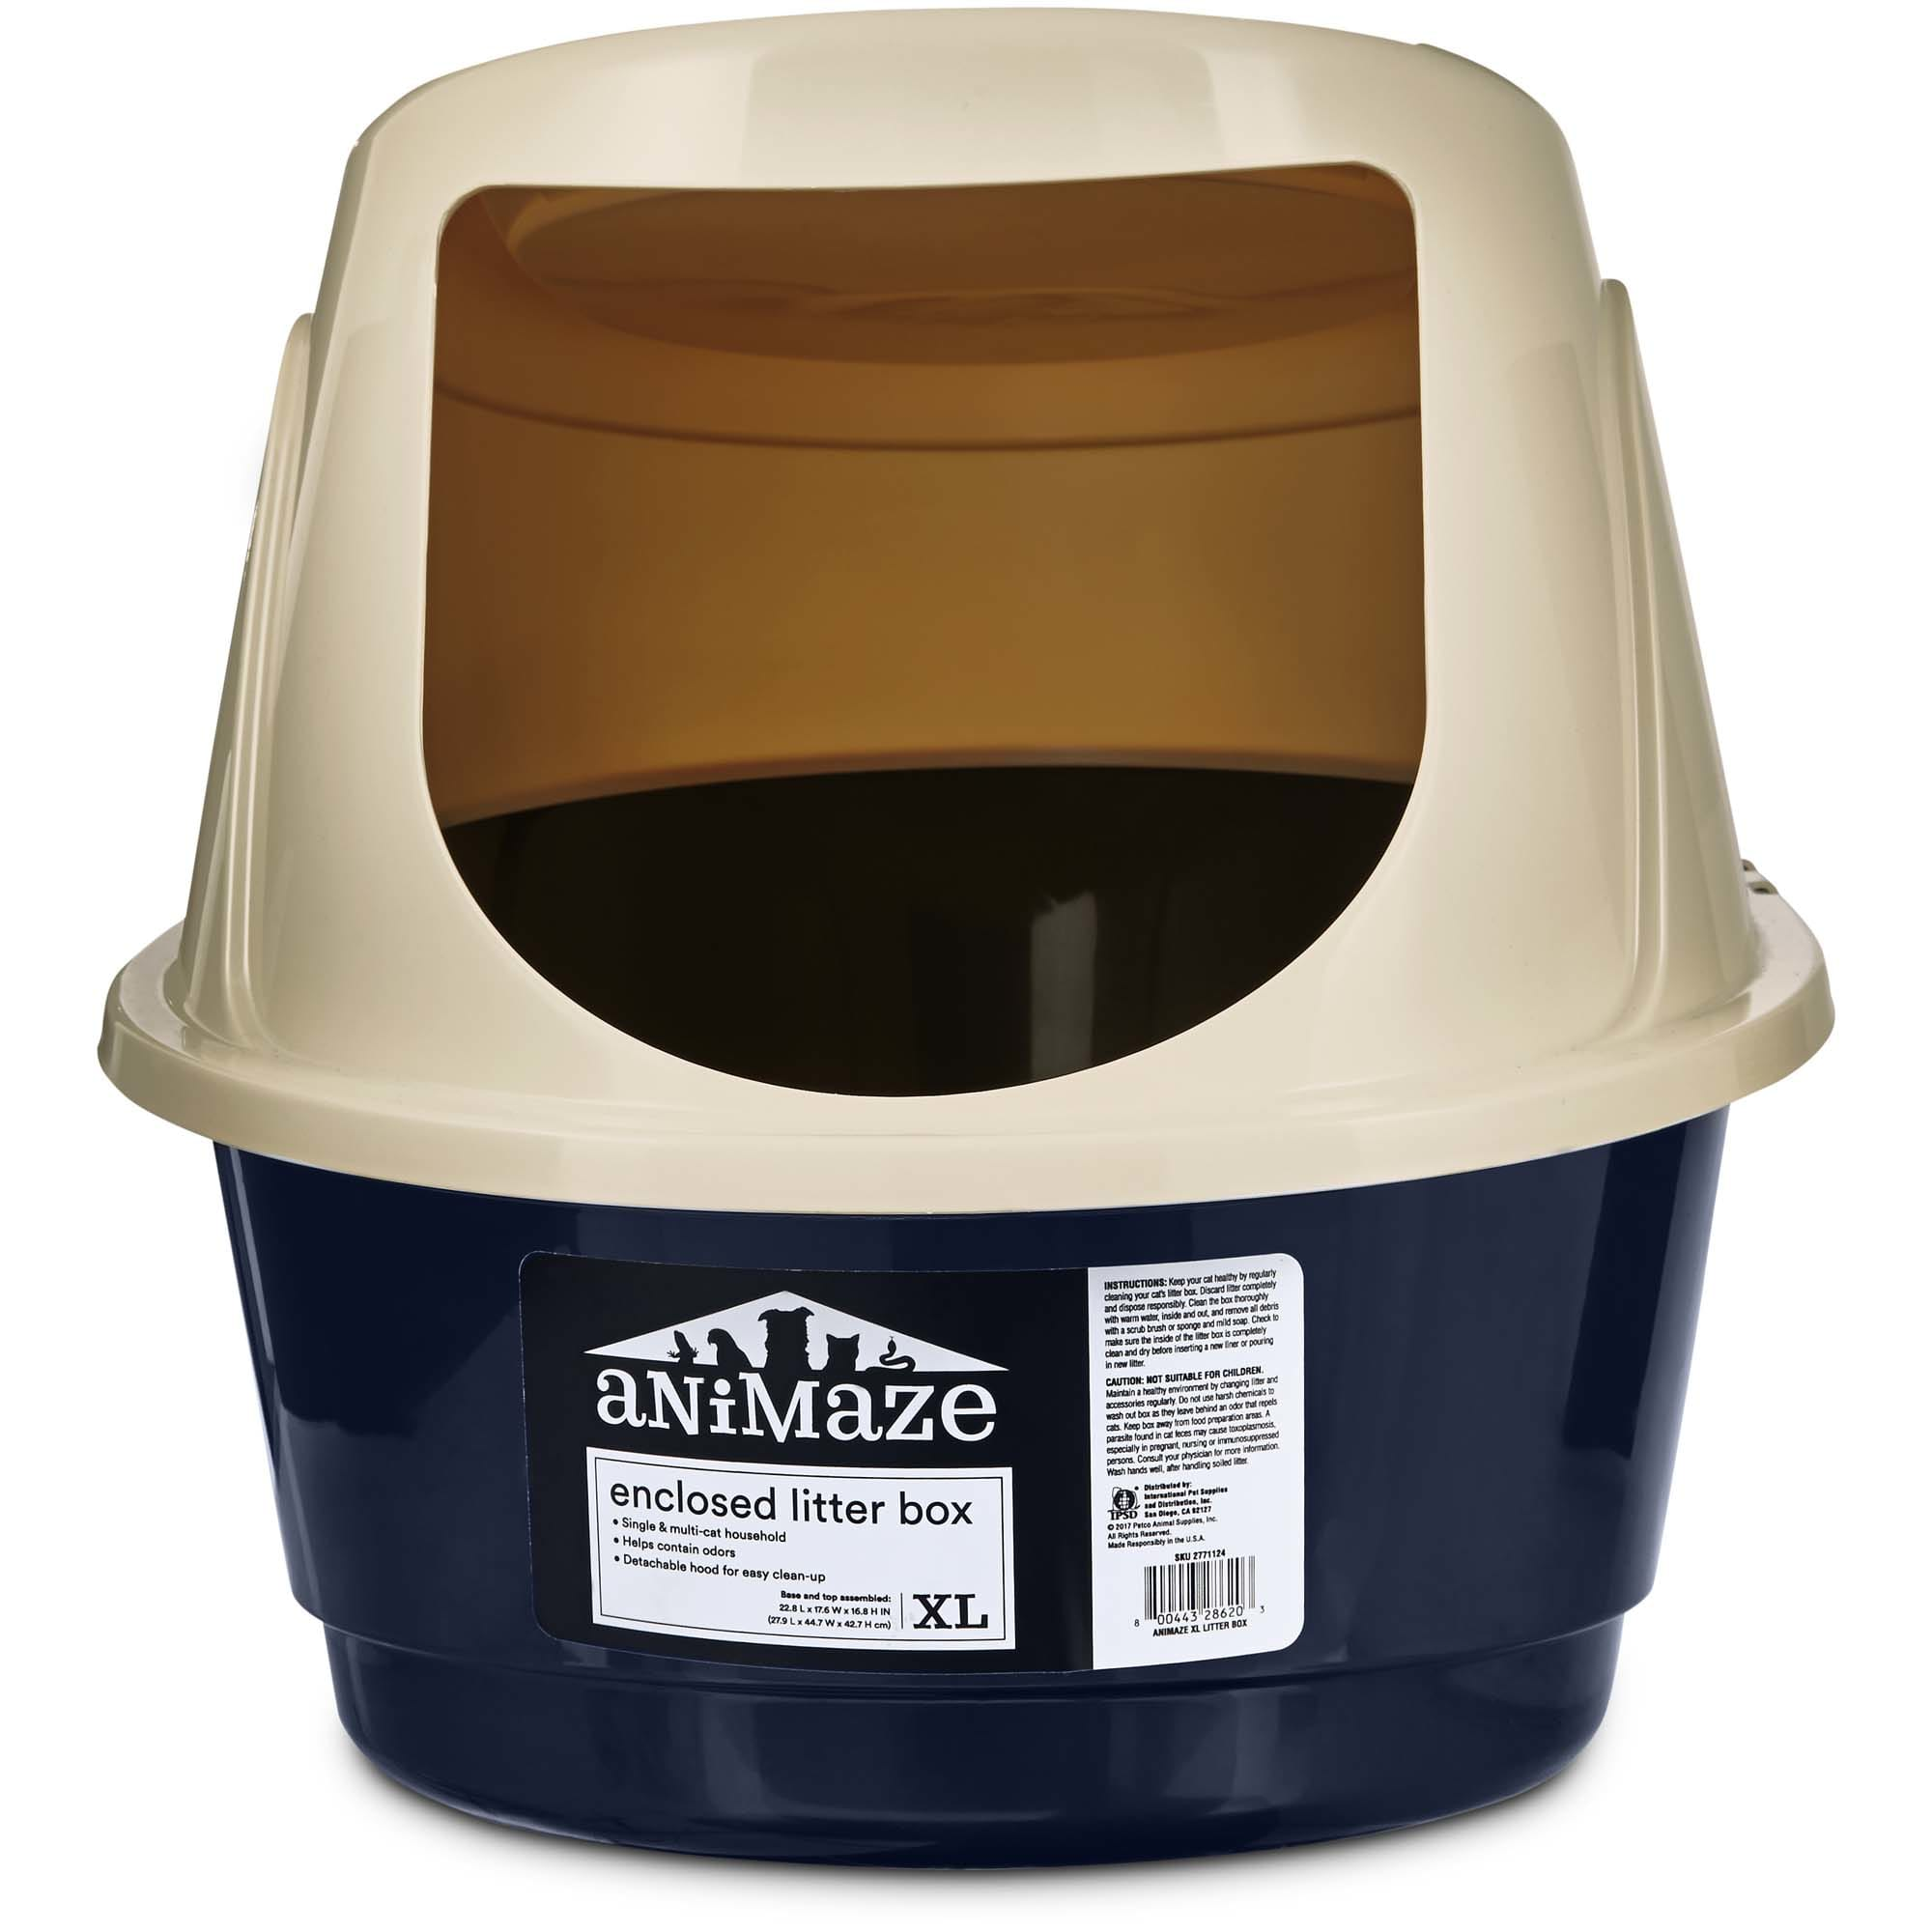 Animaze Enclosed Cat Litter Box X